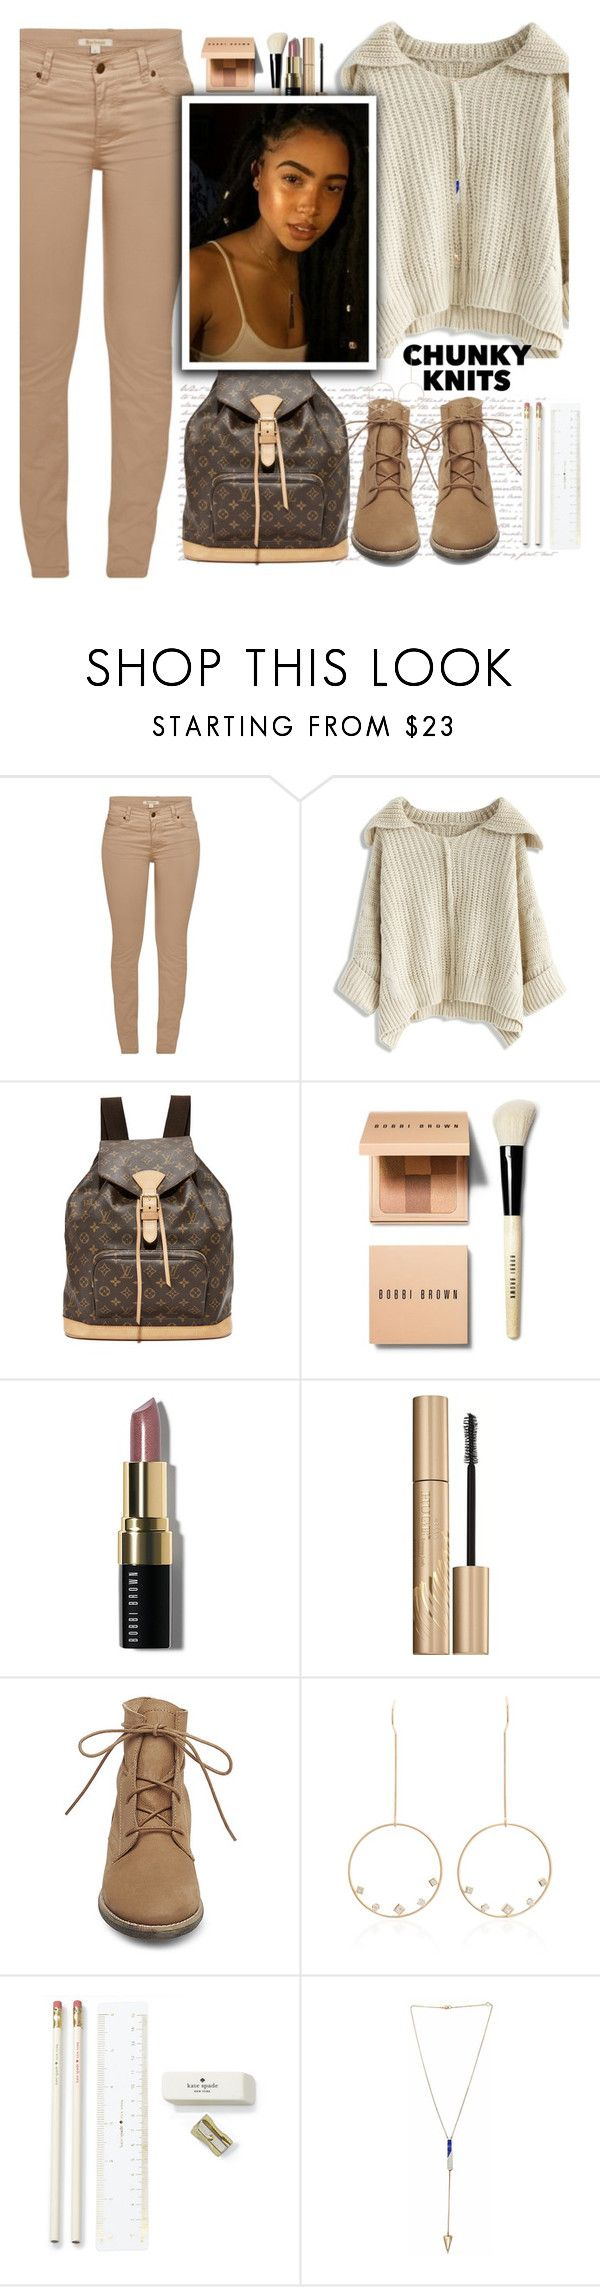 """Back to school"" by rastaress-motso ❤ liked on Polyvore featuring Barbour, Chicwish, Bobbi Brown Cosmetics, Stila, Steve Madden, ZoÃ« Chicco, Kate Spade and Edge of Ember"